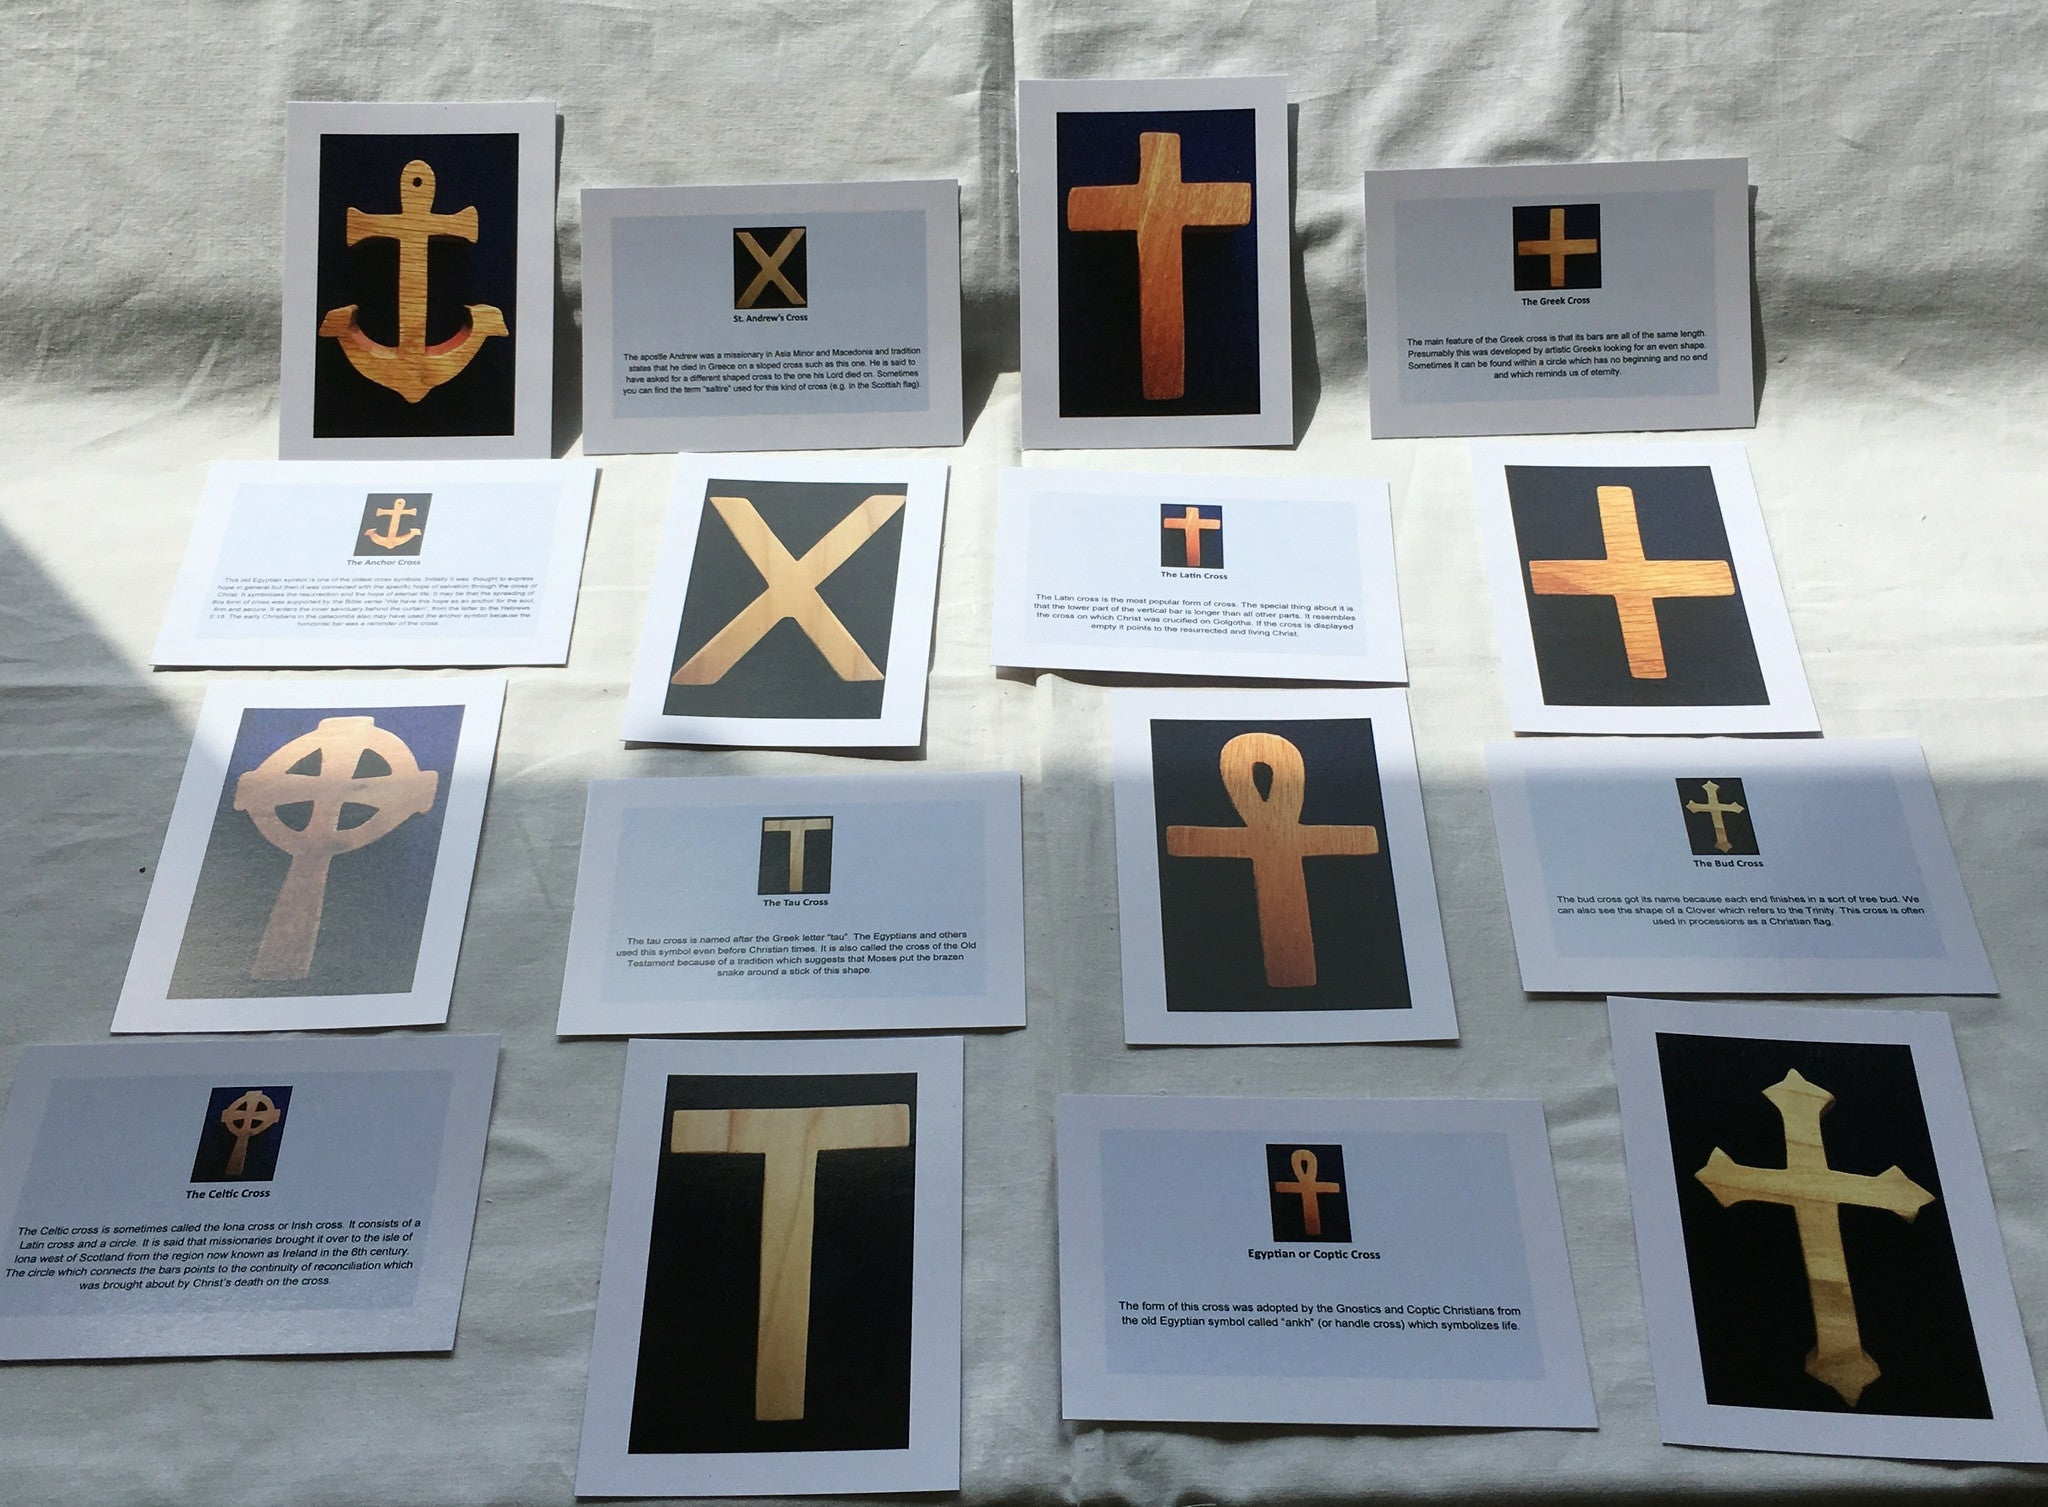 S8B - 16 Laminated Control Cards - The Crosses